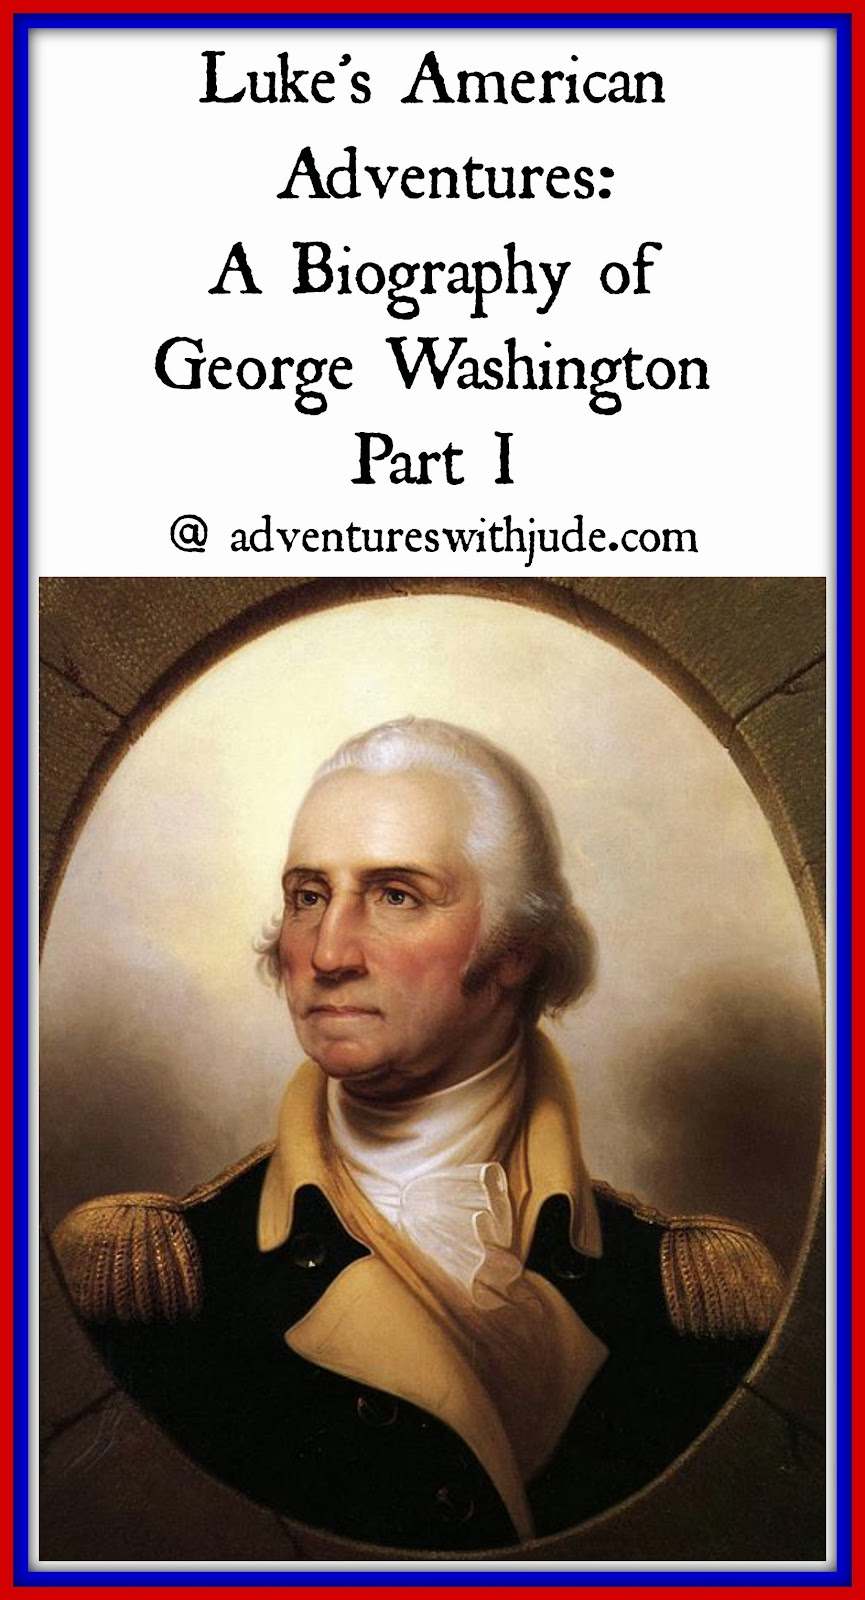 the biography of george washington Original biography of george washington along with a fact file, a page of verified quotations, a selection of his speeches, a timeline of his life and more.